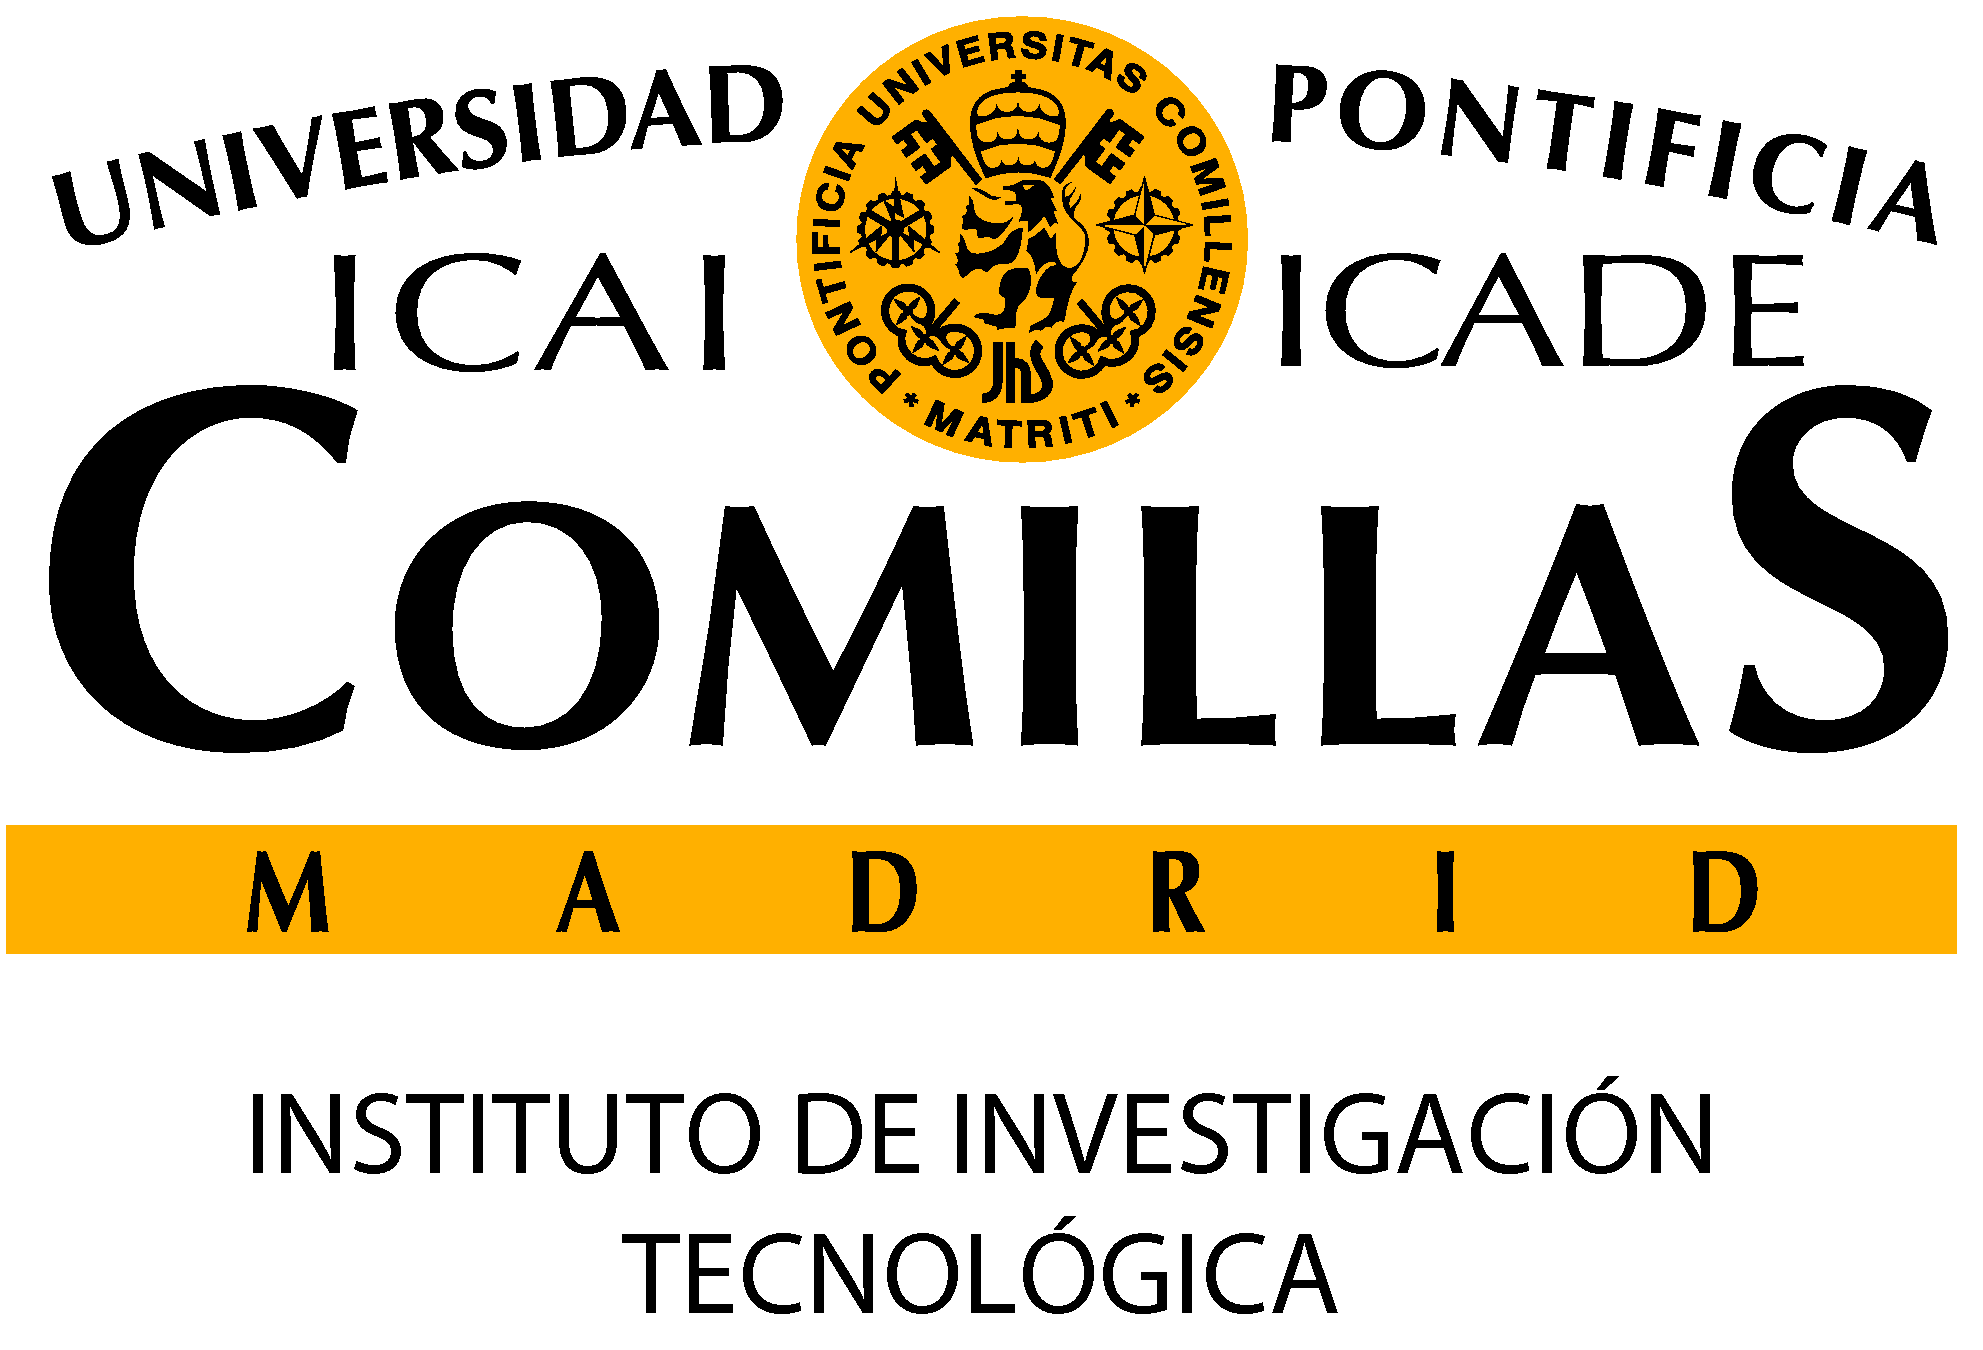 IIT Institute for Research in Technology, Comillas University